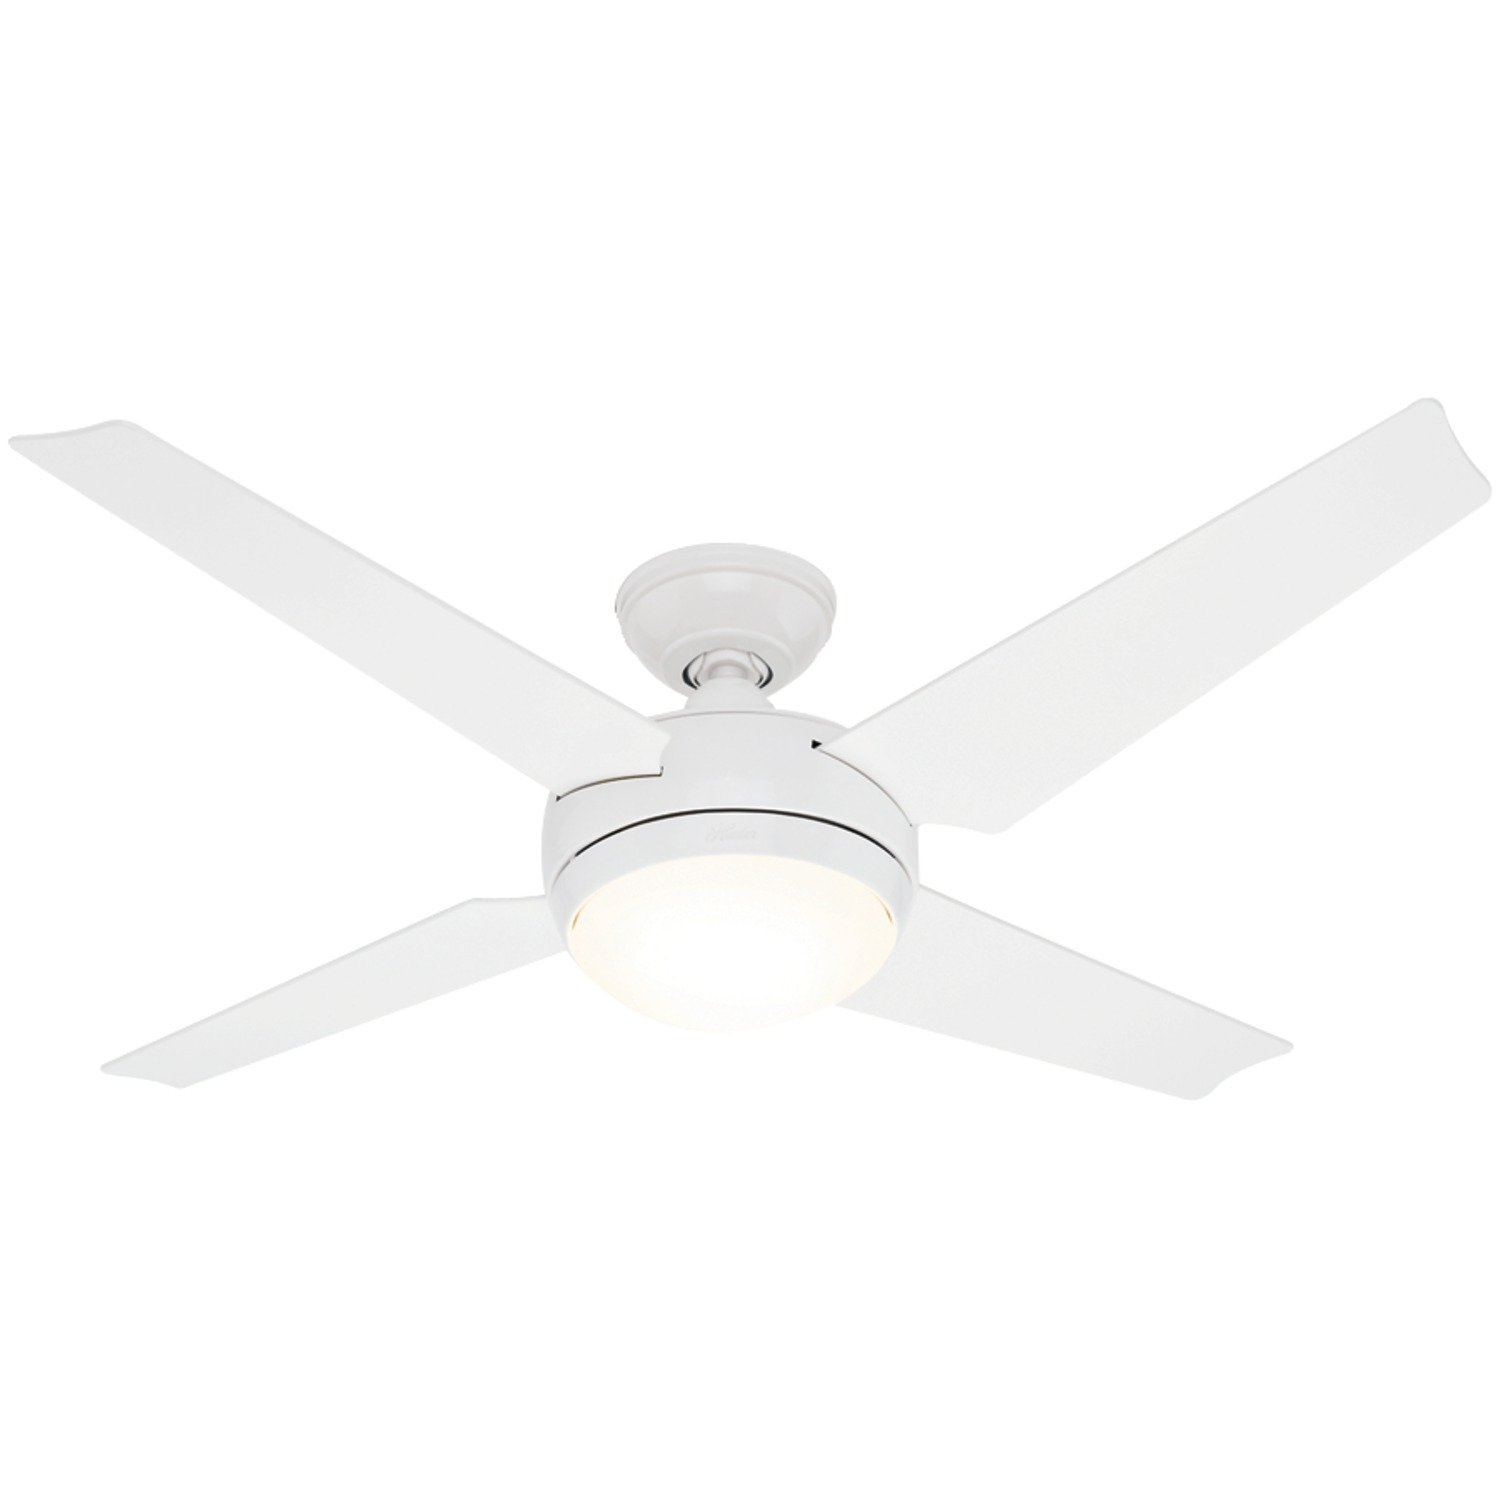 White Ceiling Fan With Led Light And Remote